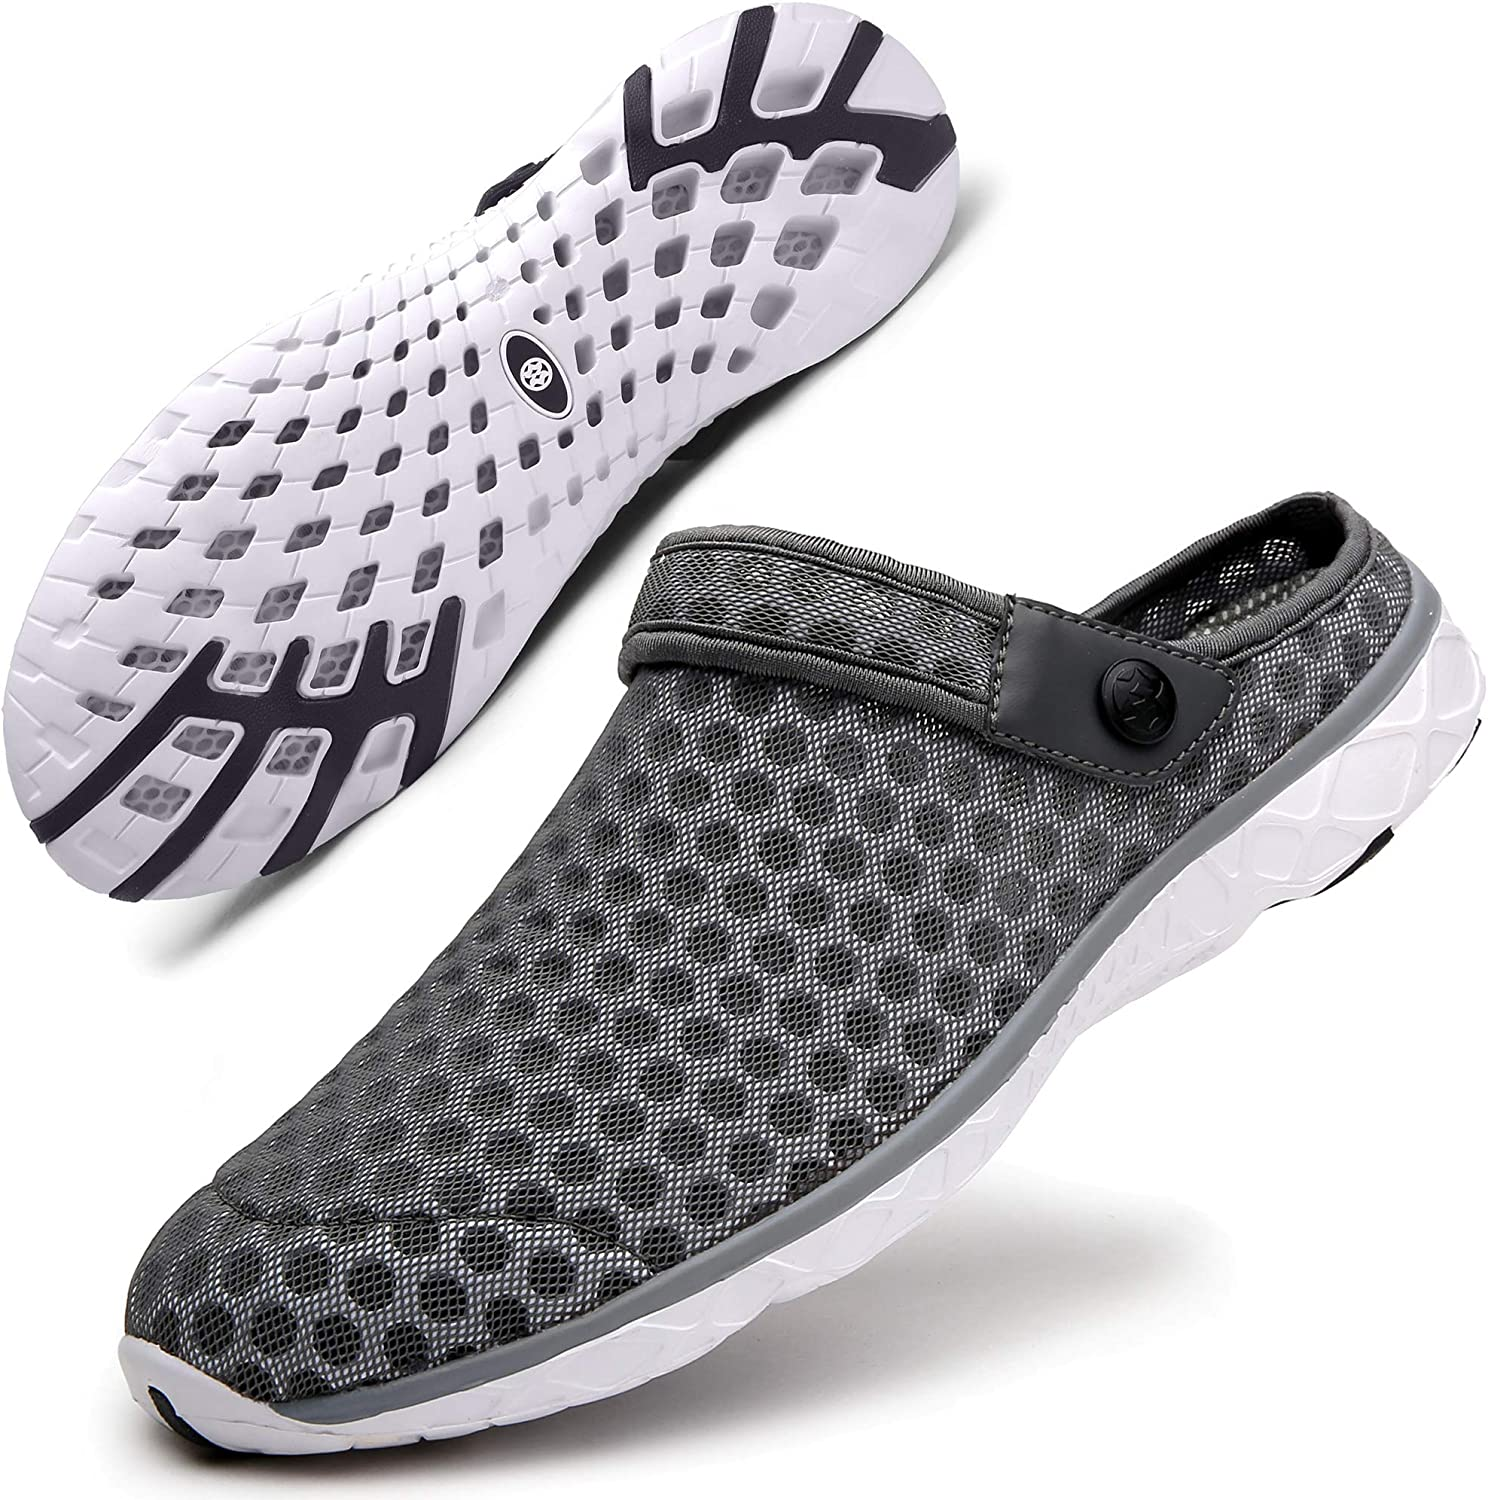 Mens Womens Summer Clogs Slippers Sandals Garden Shoes Breathable Mesh Beach Walking Slippers Shoes Size